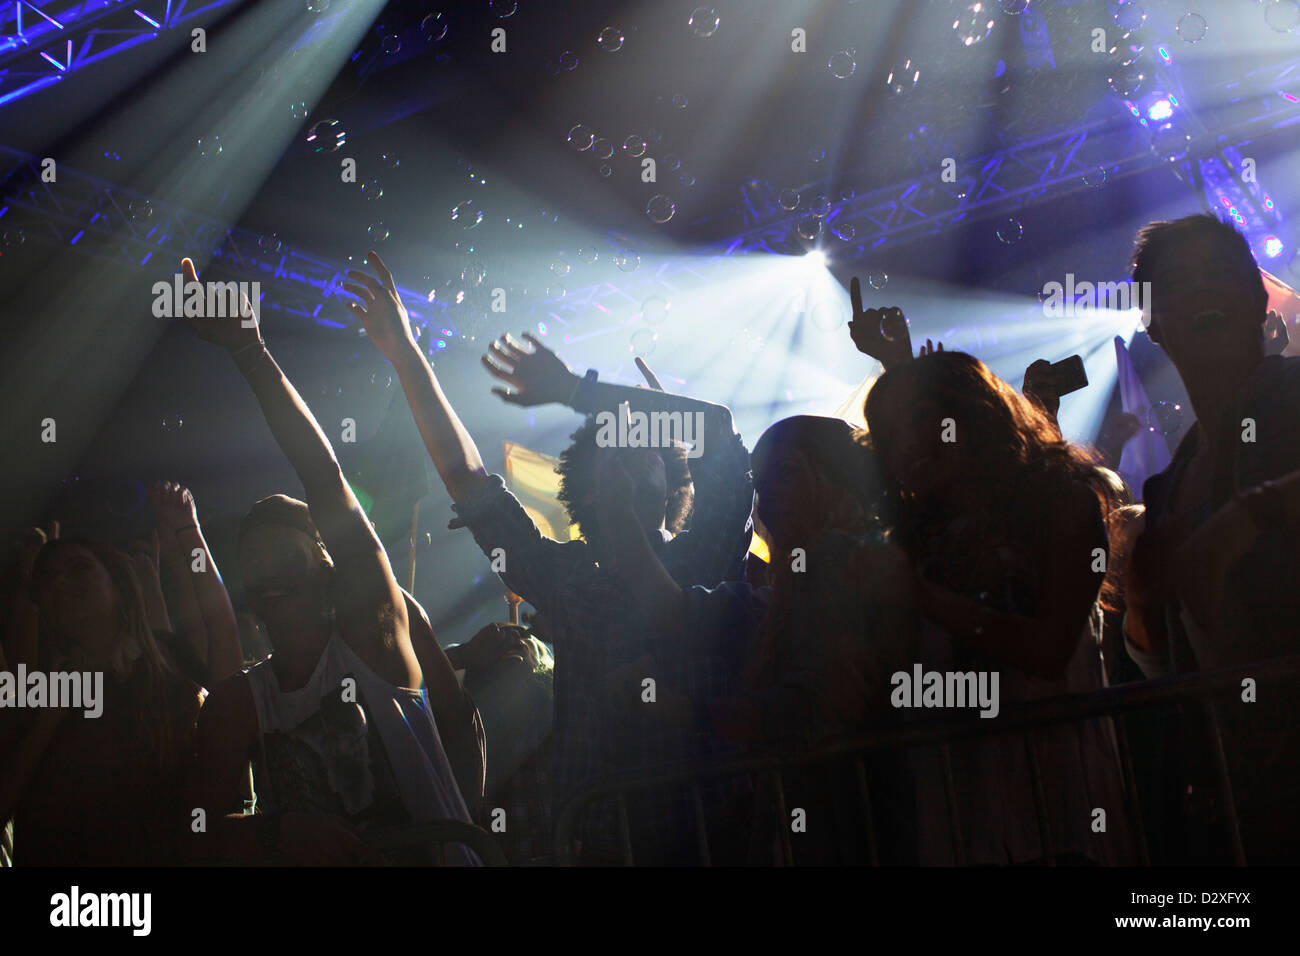 Crowd cheering with arms raised at concert - Stock Image